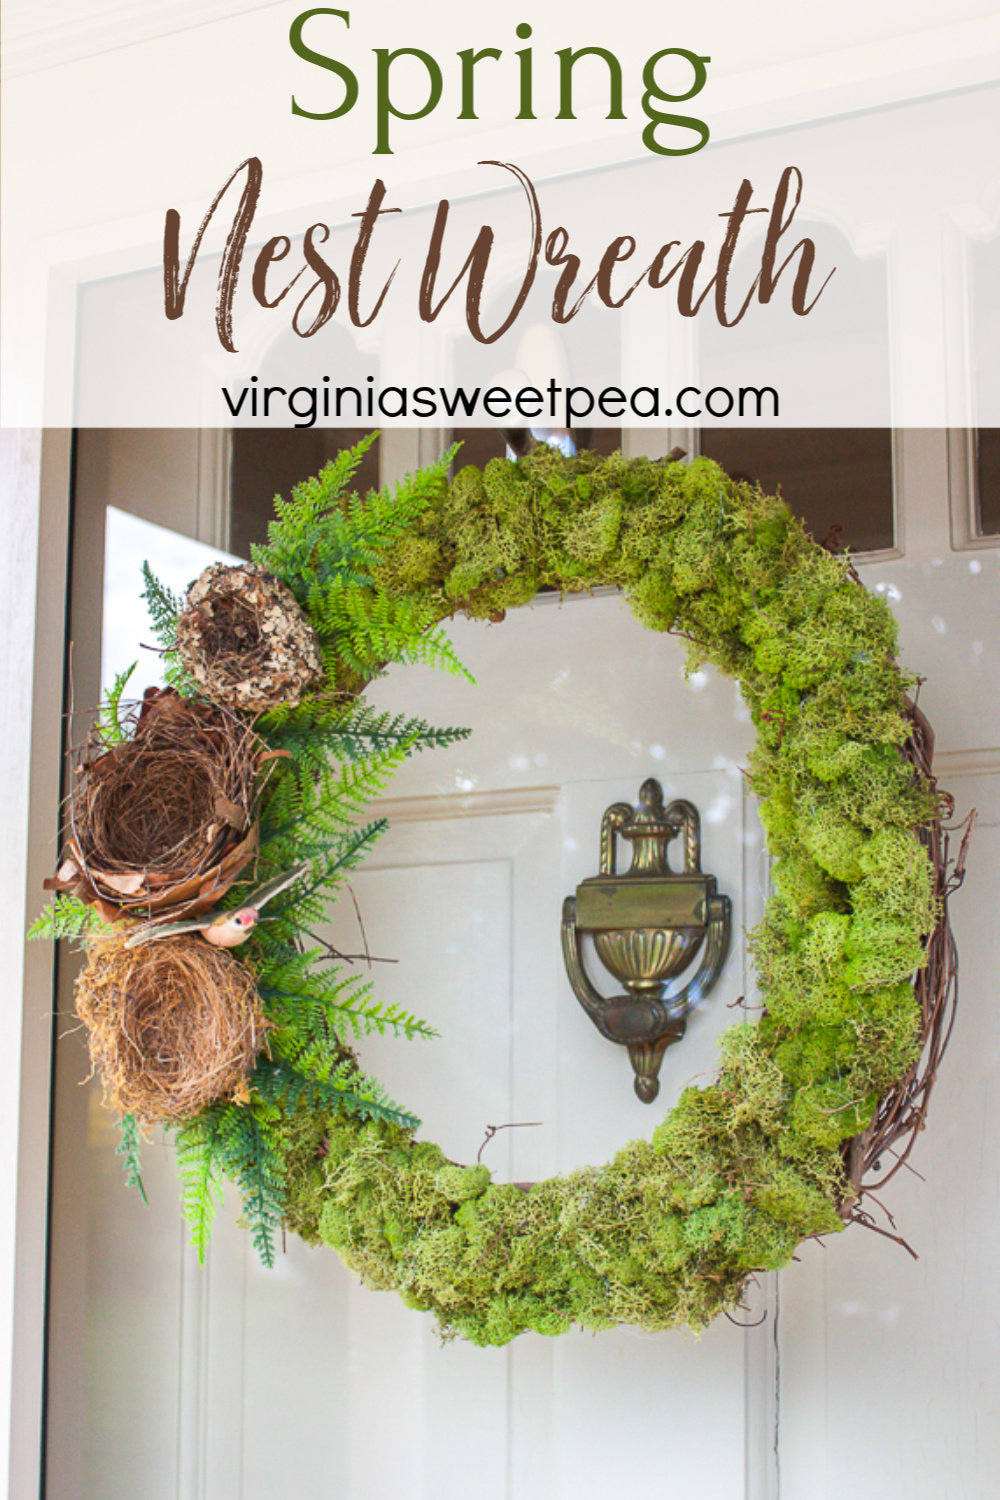 Spring Nest Wreath - Make a wreath for spring with moss, nests, ferns, and a bird as an accent.  #springwreath #wreath #springccraft #nestwreath via @spaula